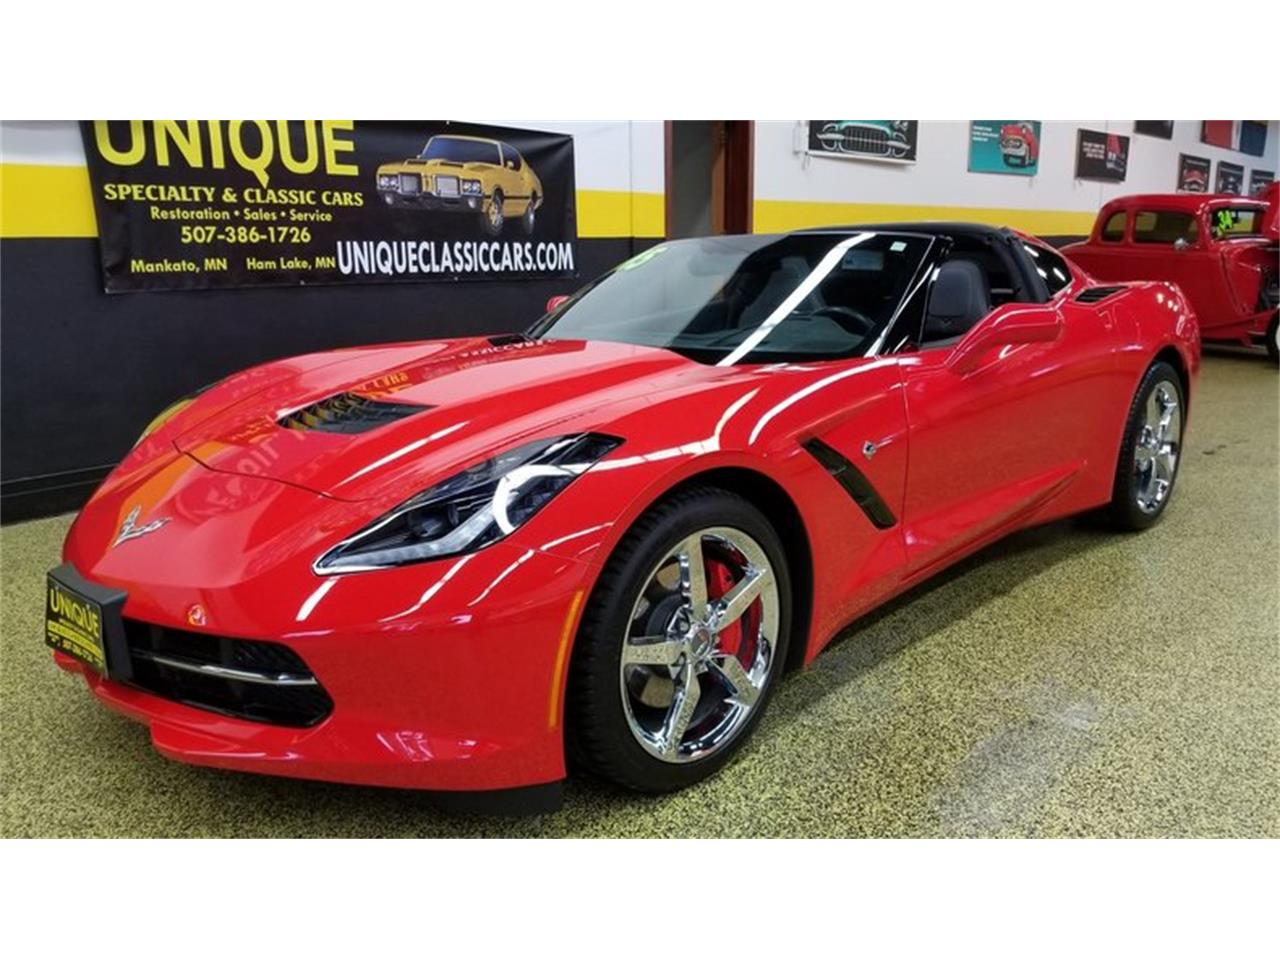 Large Picture of 2015 Chevrolet Corvette Coupe 3LT located in Mankato Minnesota - MEL0